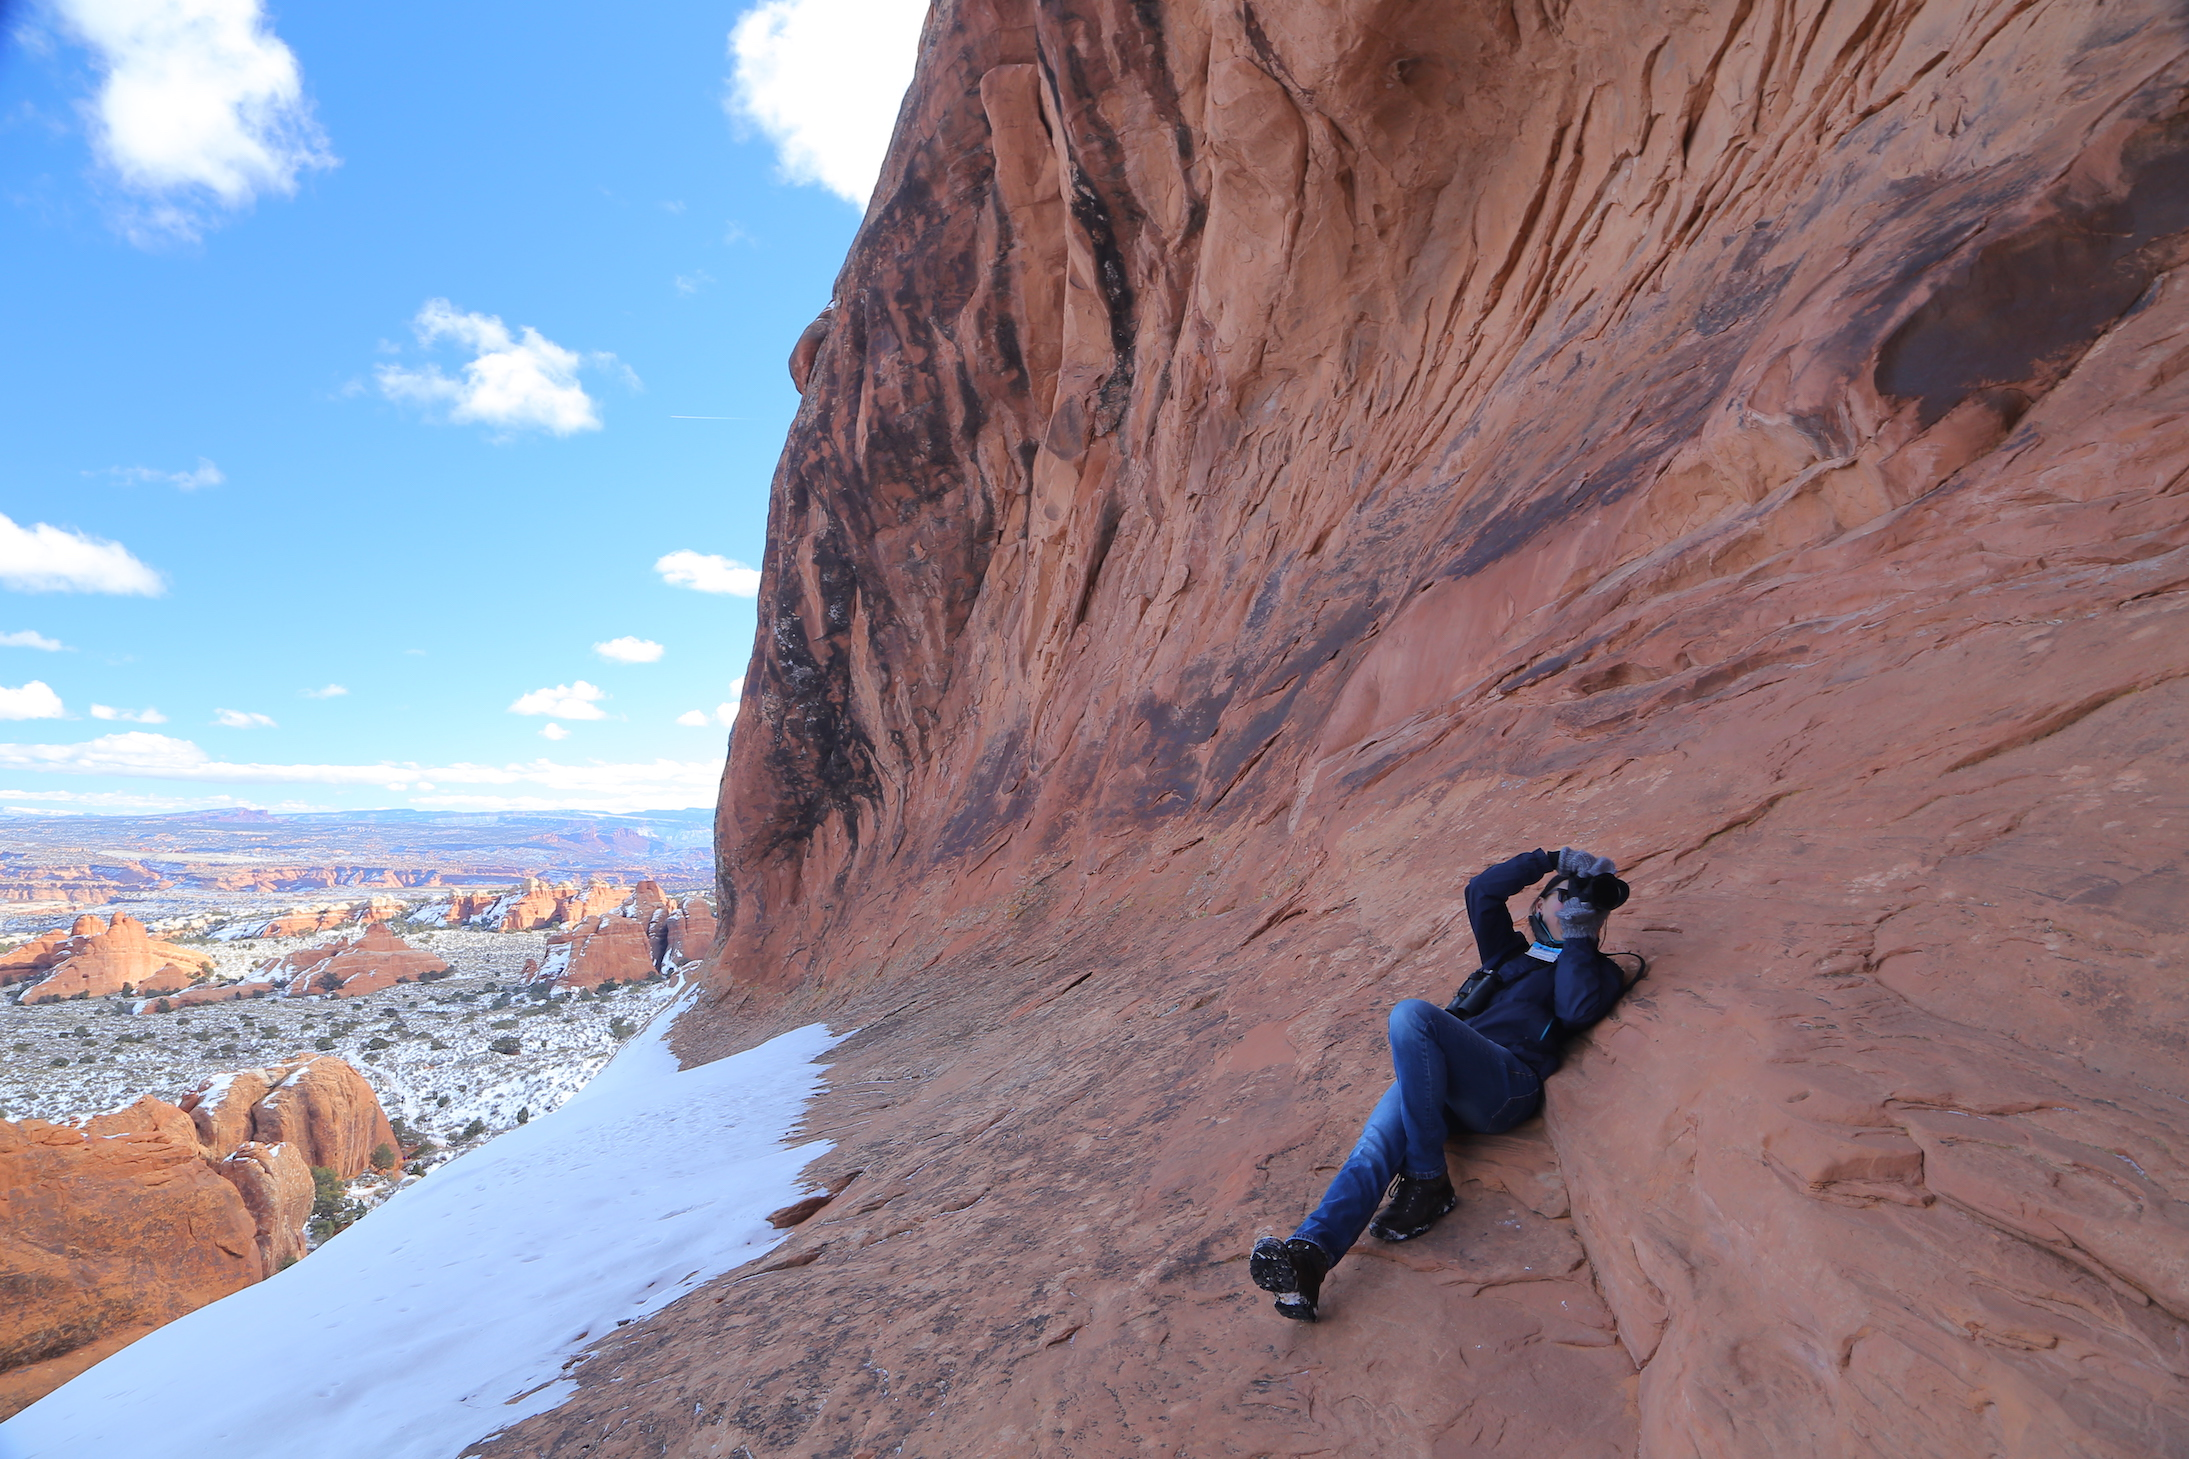 Photos of wenfei in Arches National Park by Ivan Dong